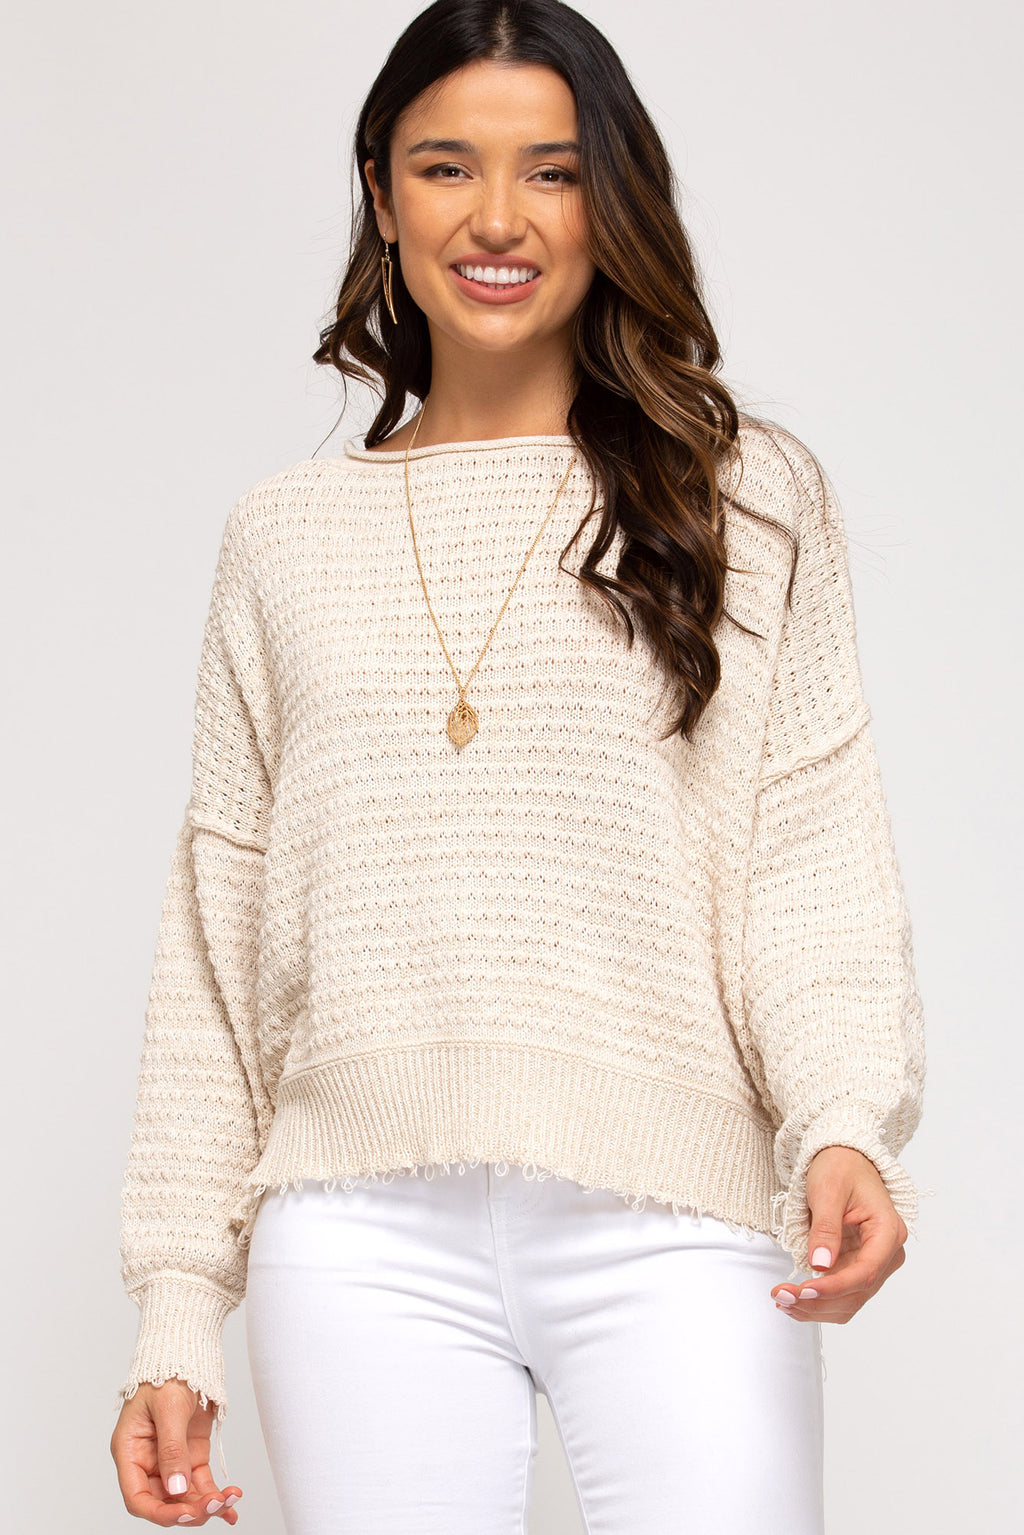 Fray Edge Texture Knit Sweater